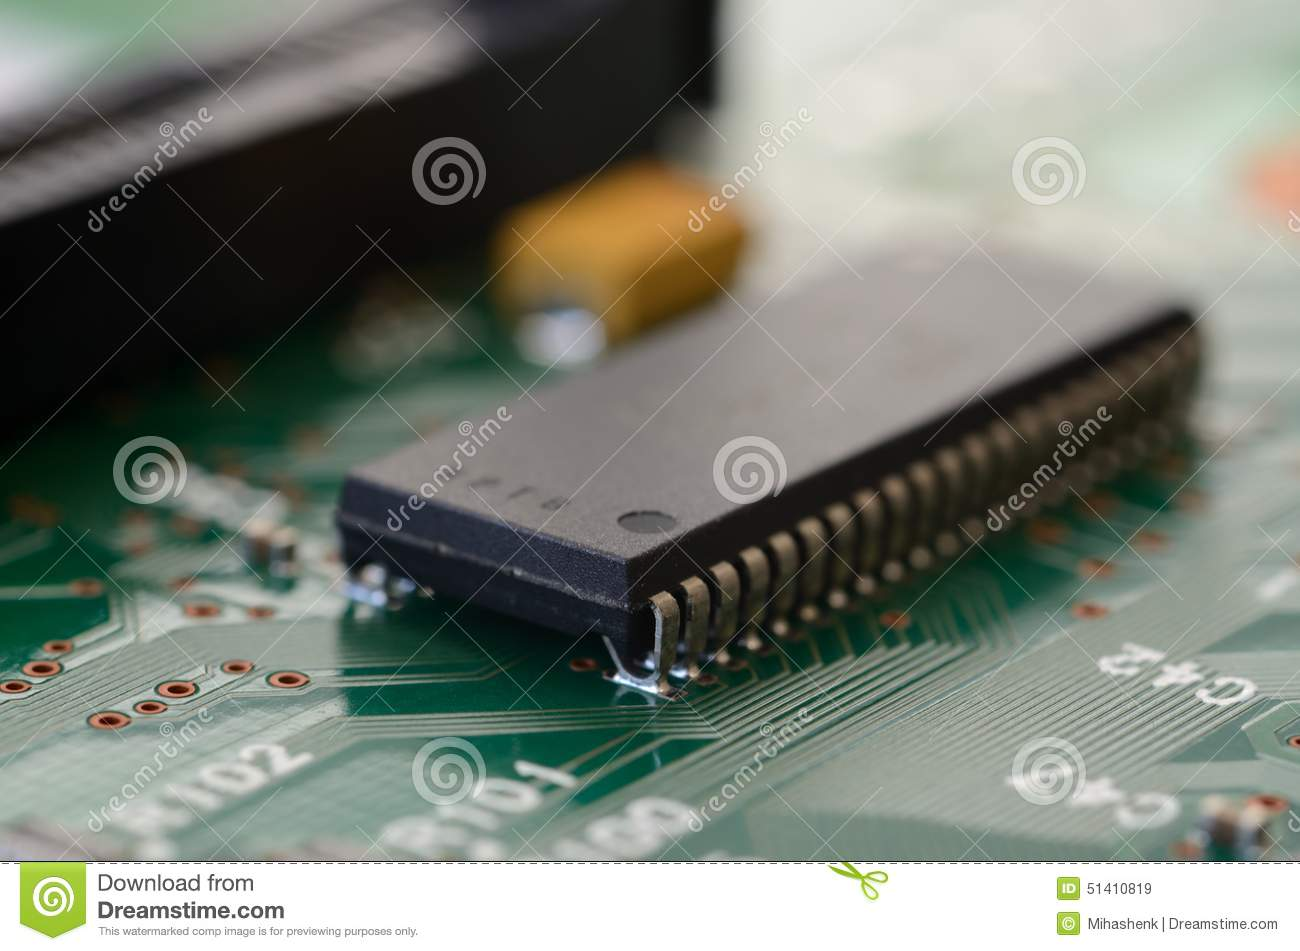 Close Up SOIC With J-type Leads On PCB Stock Photo - Image: 51410819